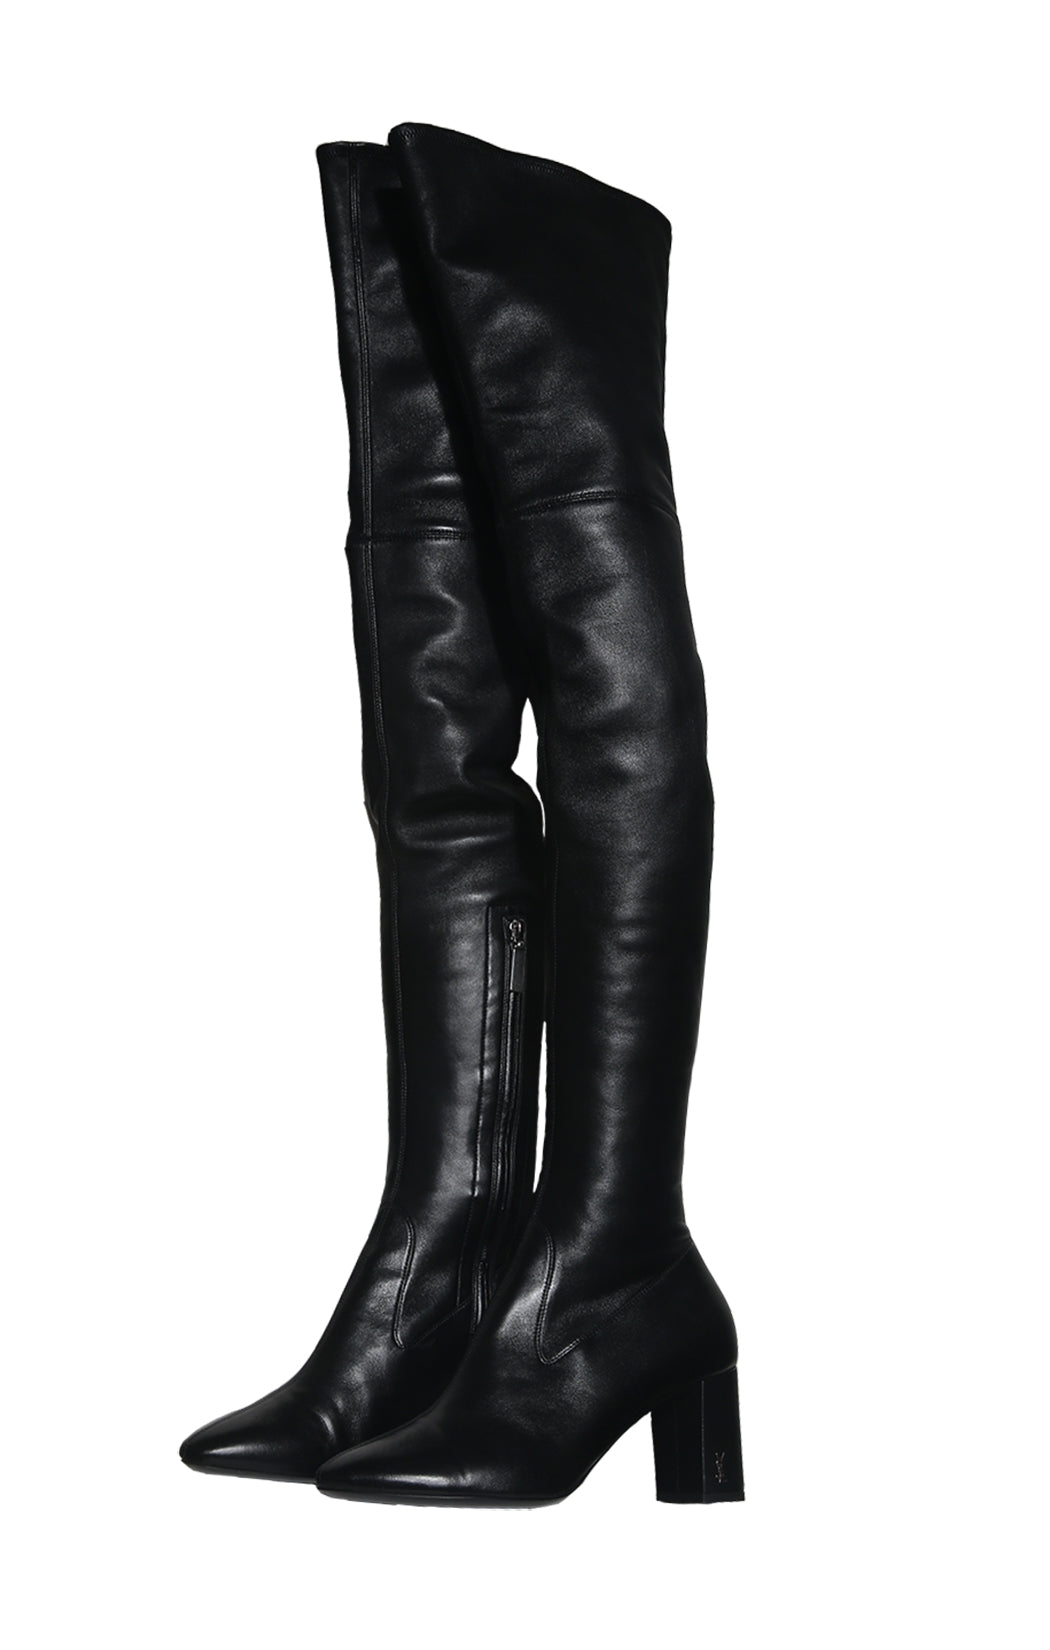 Front view of SAINT LAURENT Over The Knee Boots Size: 39 (US 9)